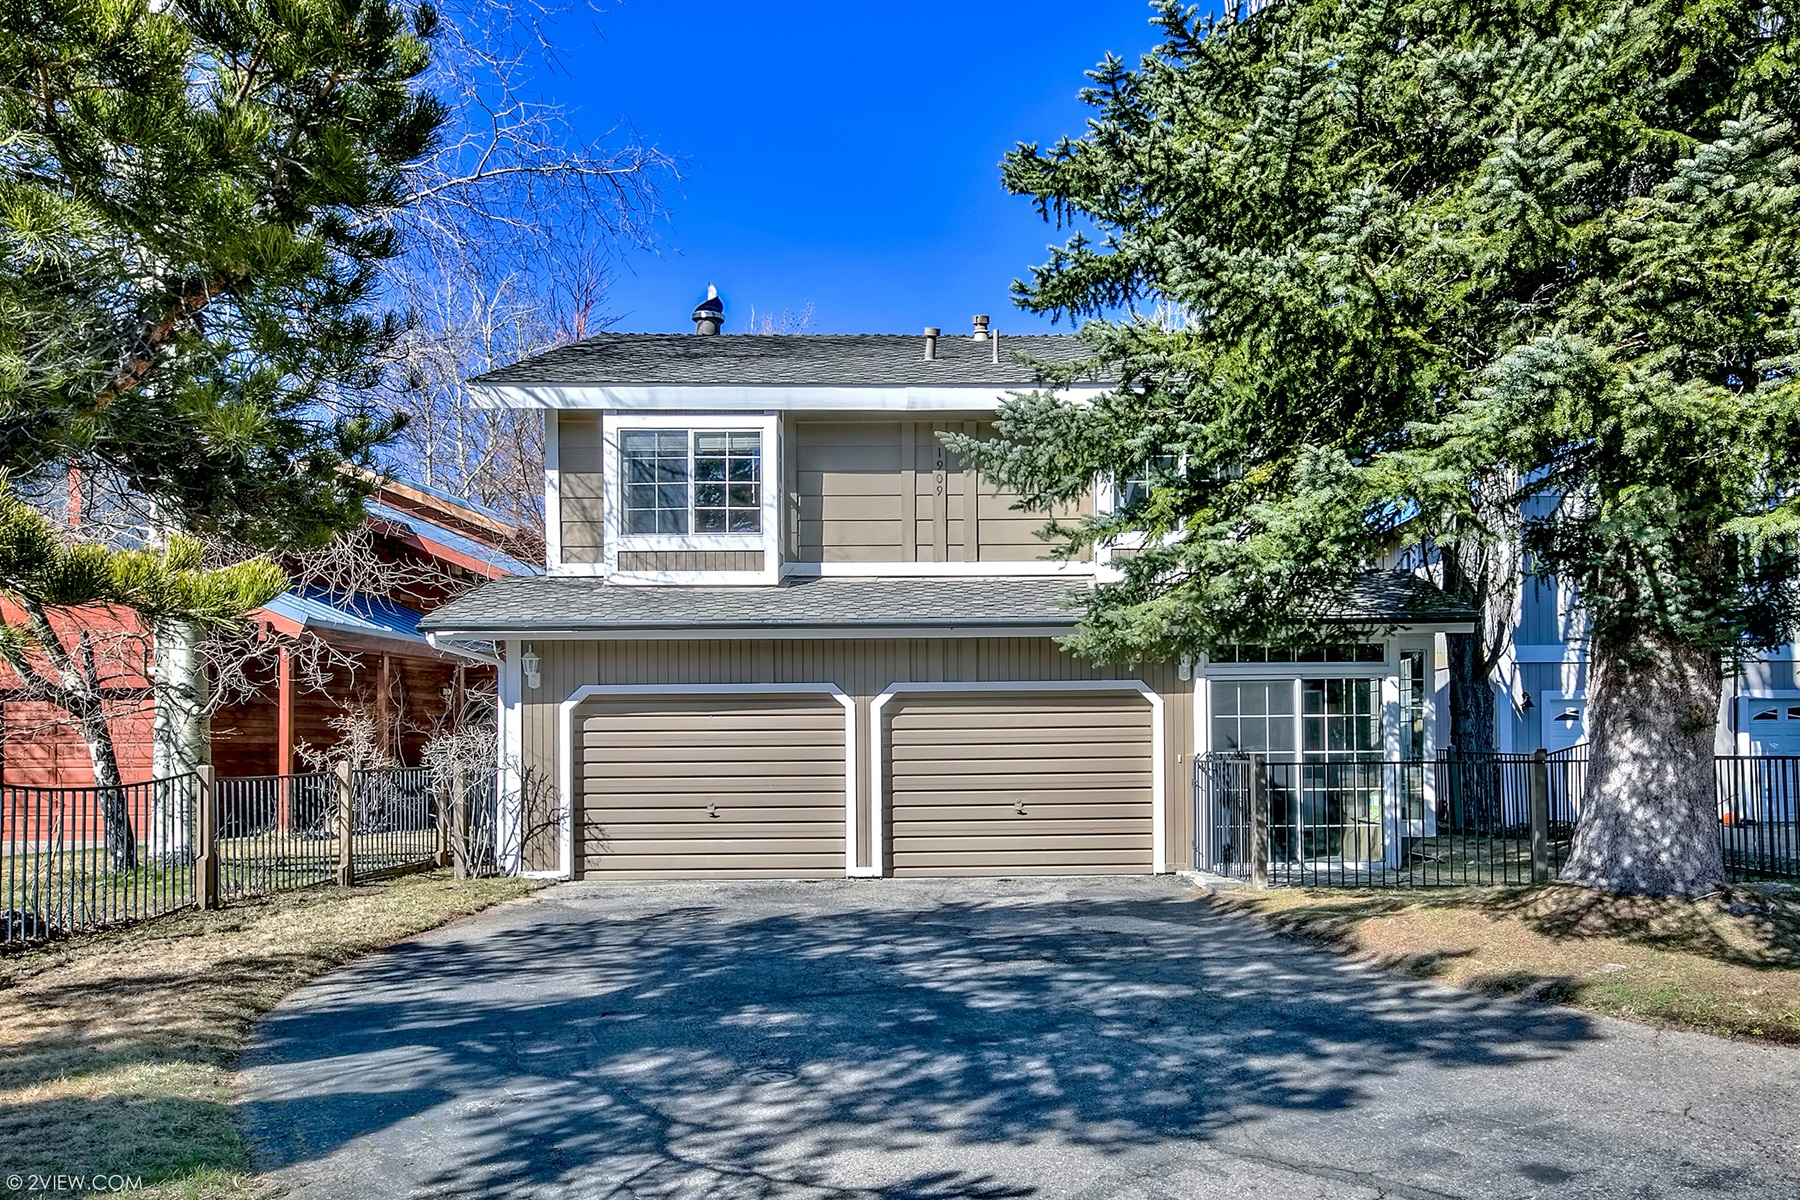 Single Family Home for Active at 1909 Cathedral Ct., South Lake Tahoe, CA 96150 1909 Cathedral Ct. South Lake Tahoe, California 96150 United States